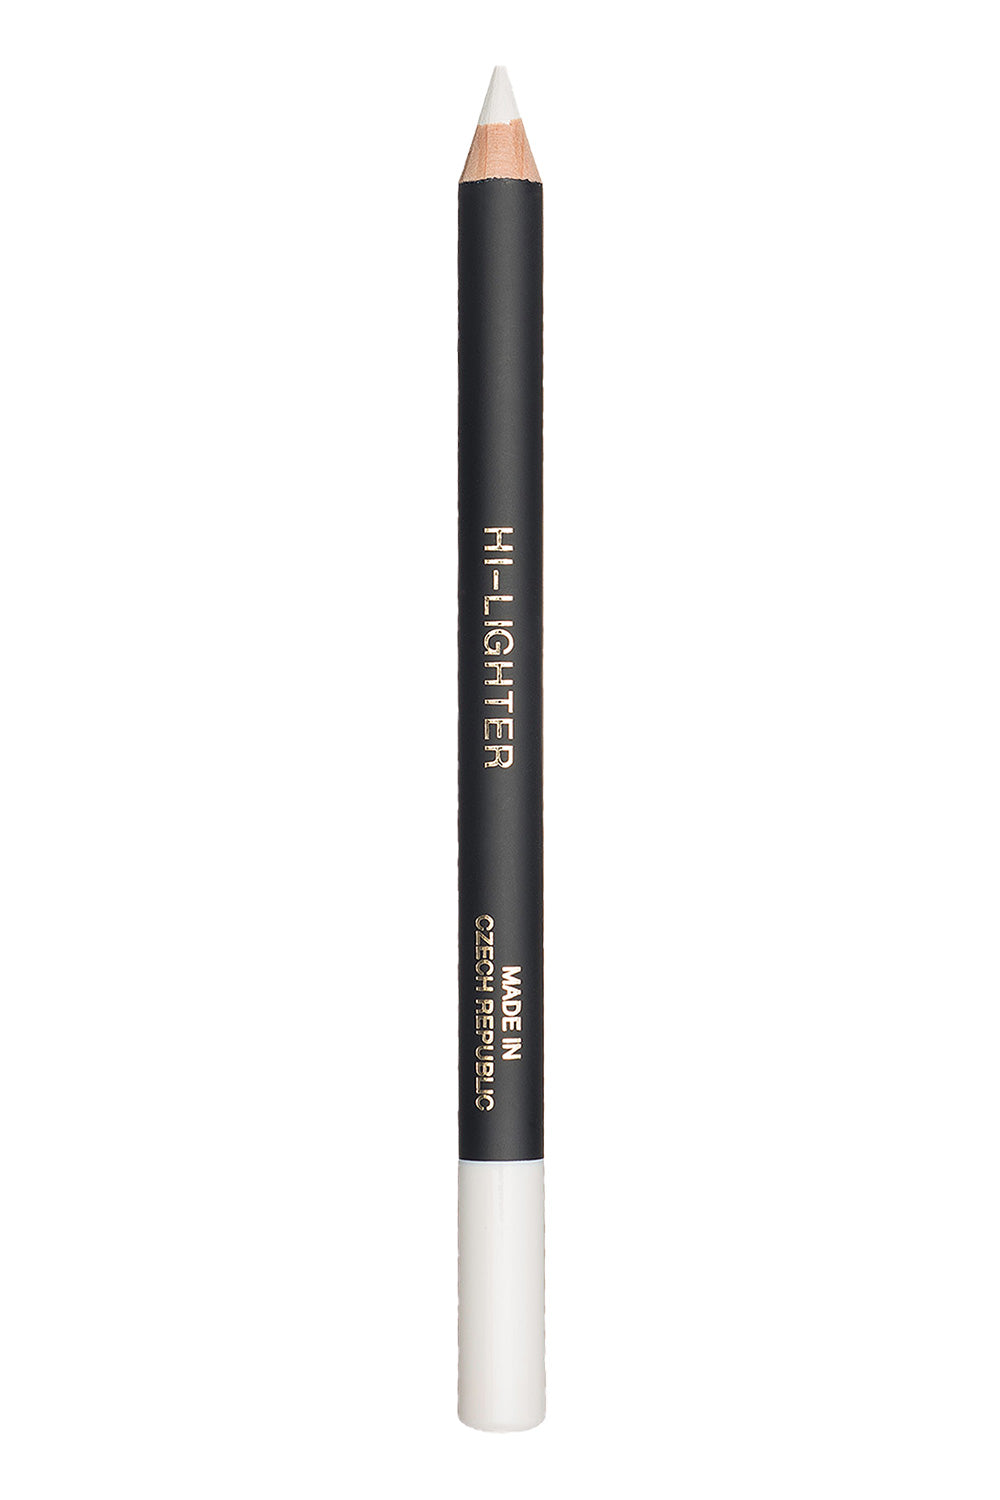 Hi-Lighter - Eye Liner Pencil